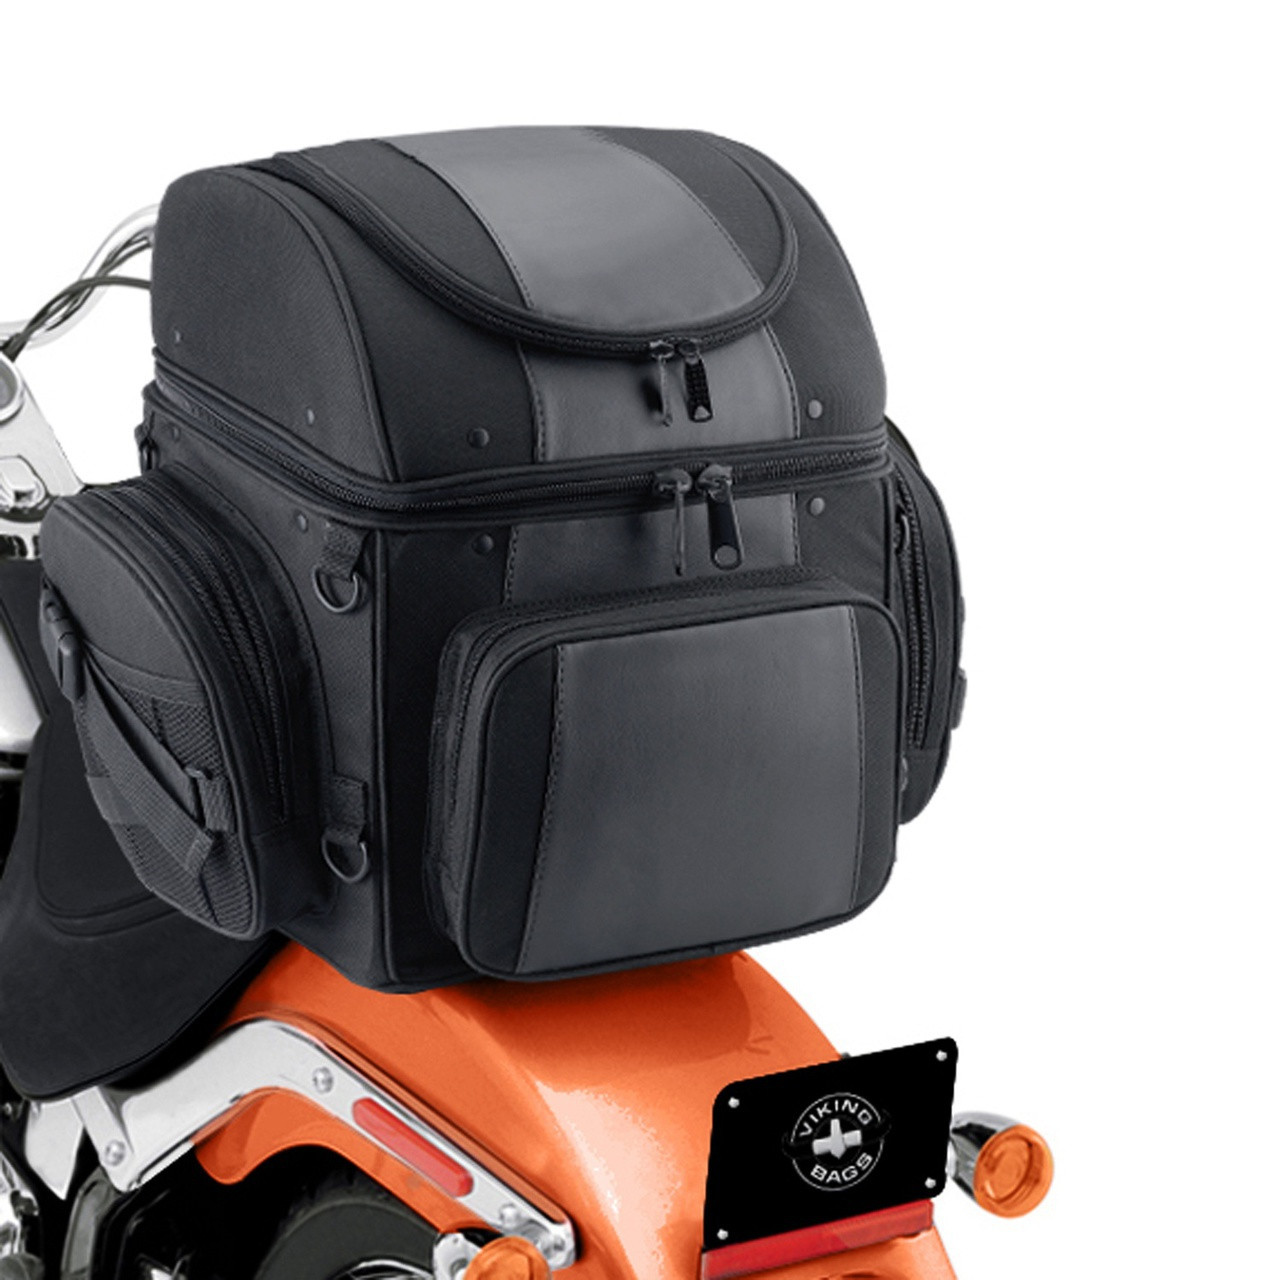 Medium Motorcycle Back Seat Luggage (1,800 cubic inches)   Back on Bike View